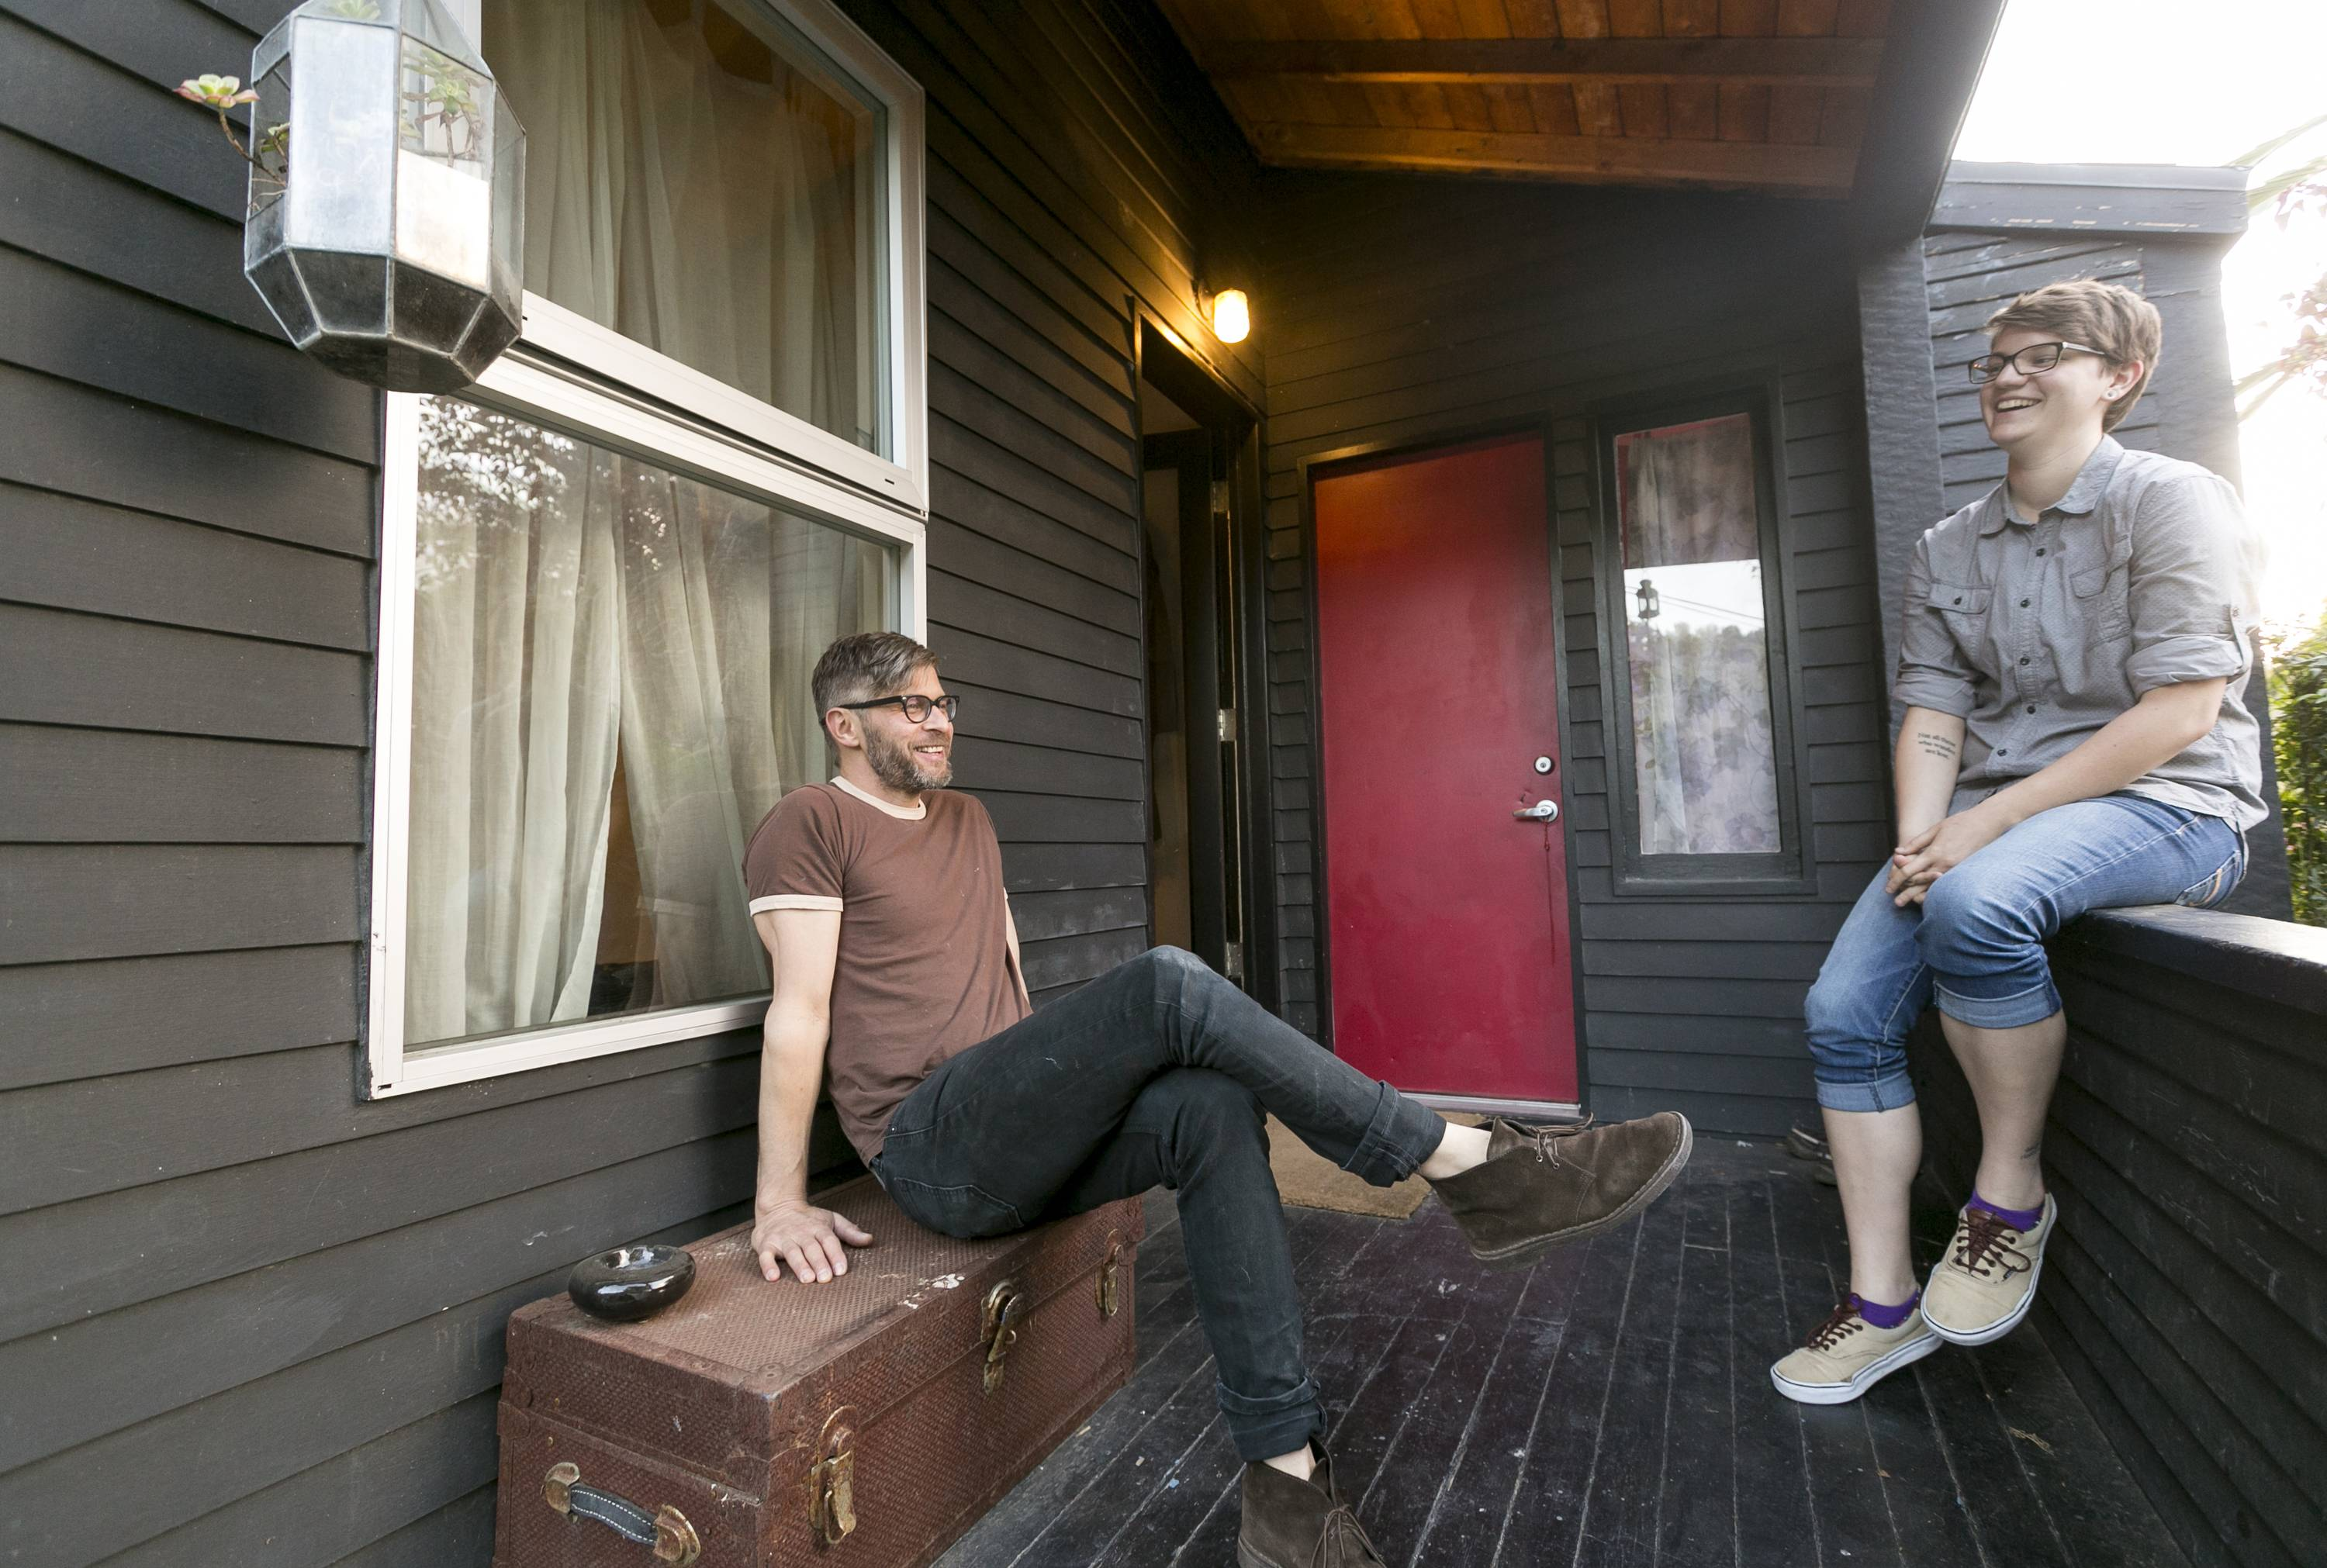 Ceramist and Airbnb host Jonathan Entler, left, and his Airbnb guest Megan Walsh, a Chicago writer on a Summer internship, enjoy the afternoon in his Echo Park home in Los Angeles. Deeper savings can be had through sites such as Airbnb that arrange for people to rent out rooms, apartments or even couches.